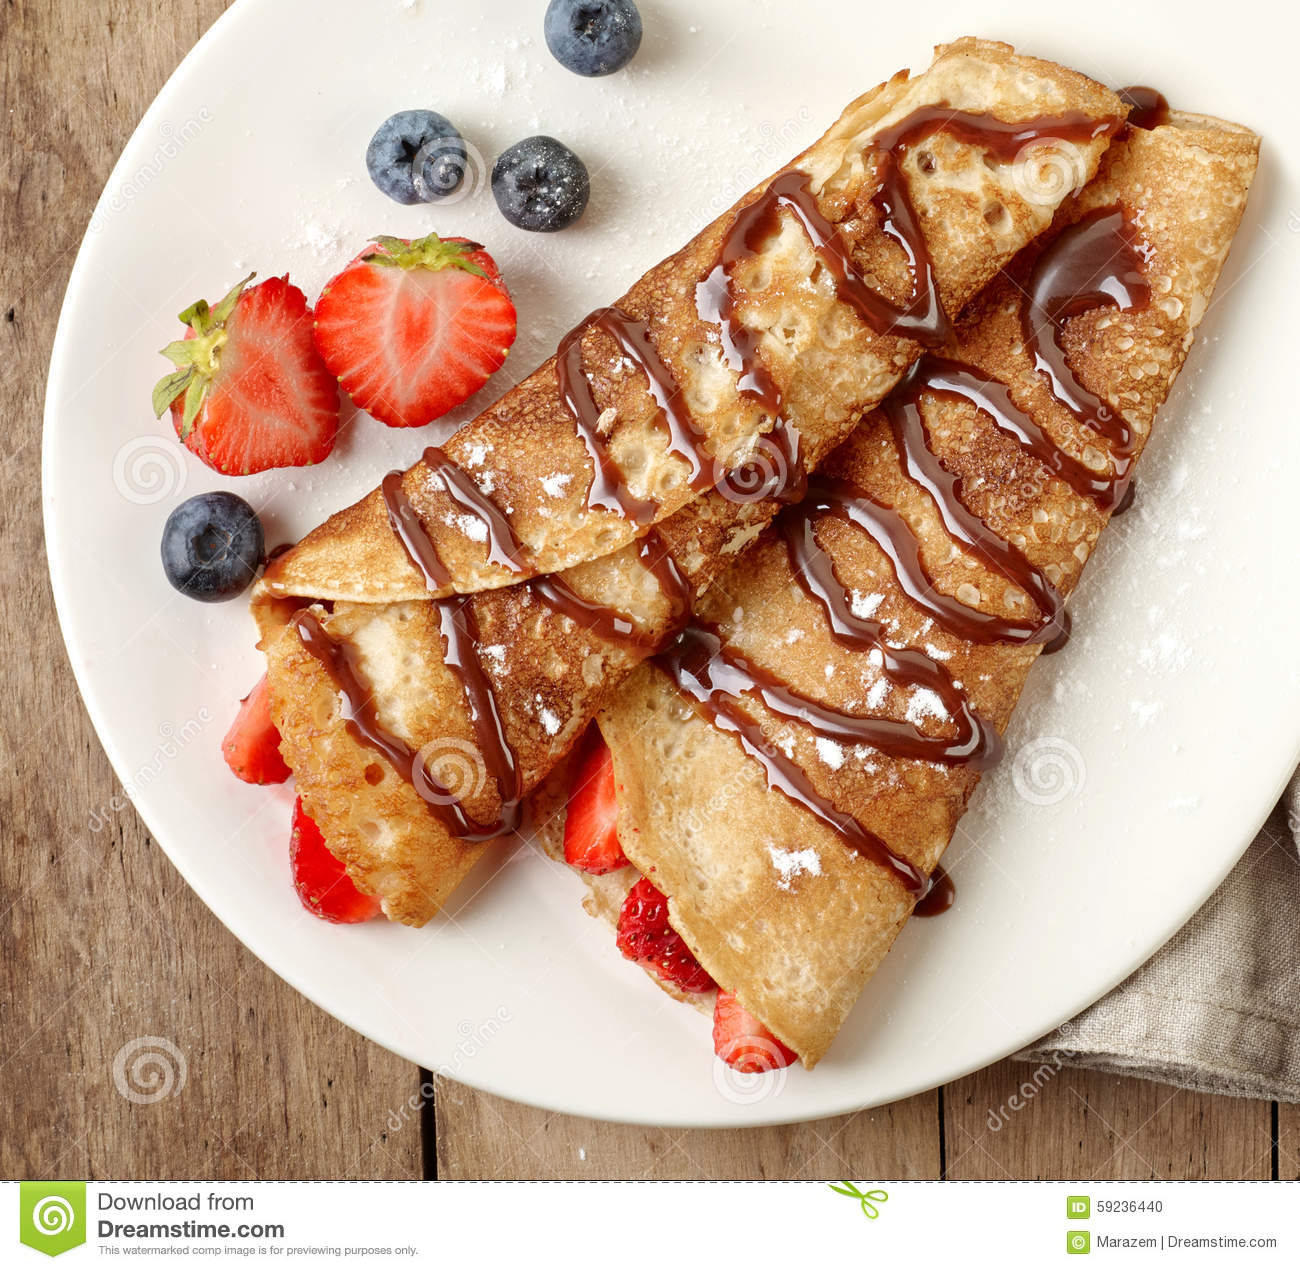 Crepes With Strawberries And Chocolate Stock Photo - Image: 59236440